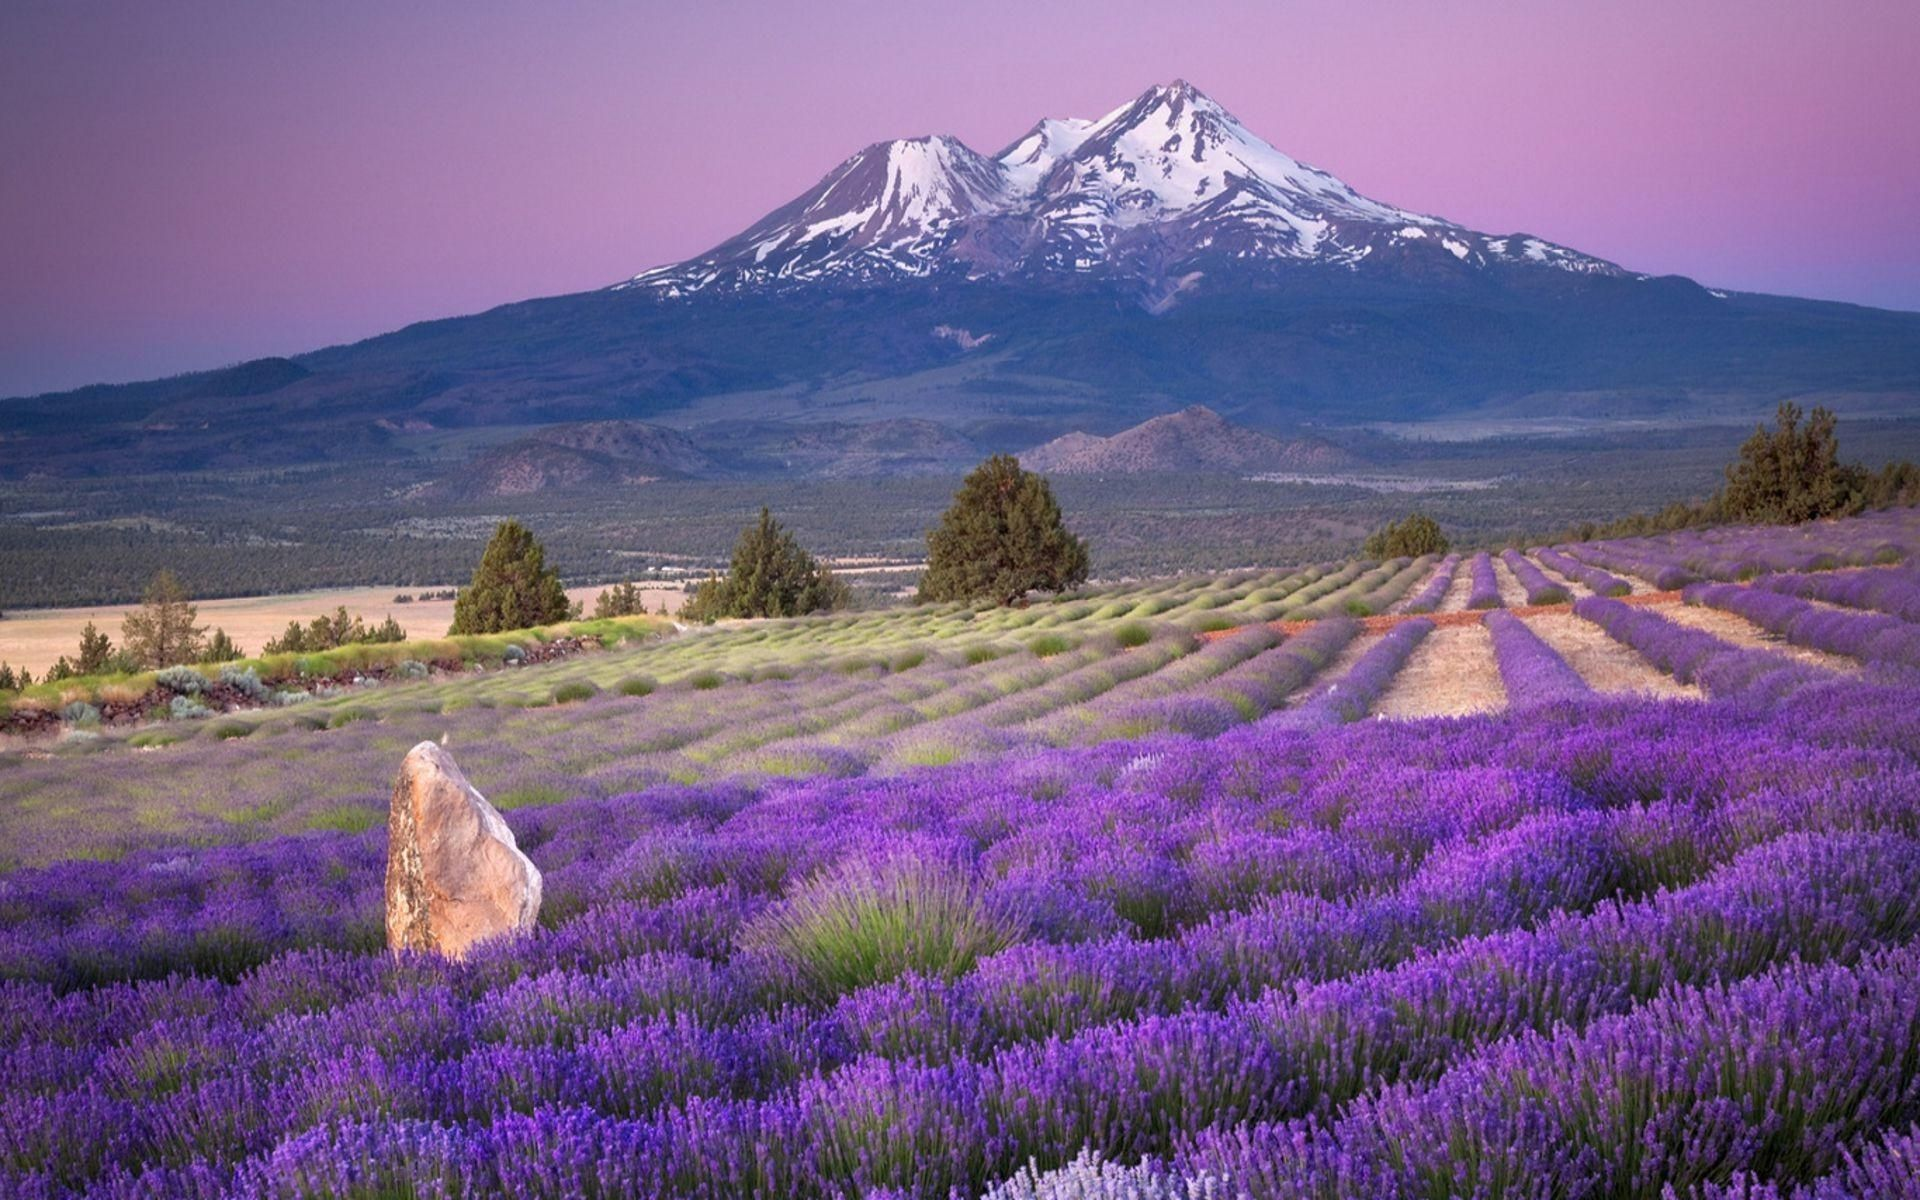 lavender lavender fields mountain nature field hd wallpapers download desktop backgrounds photos mobile